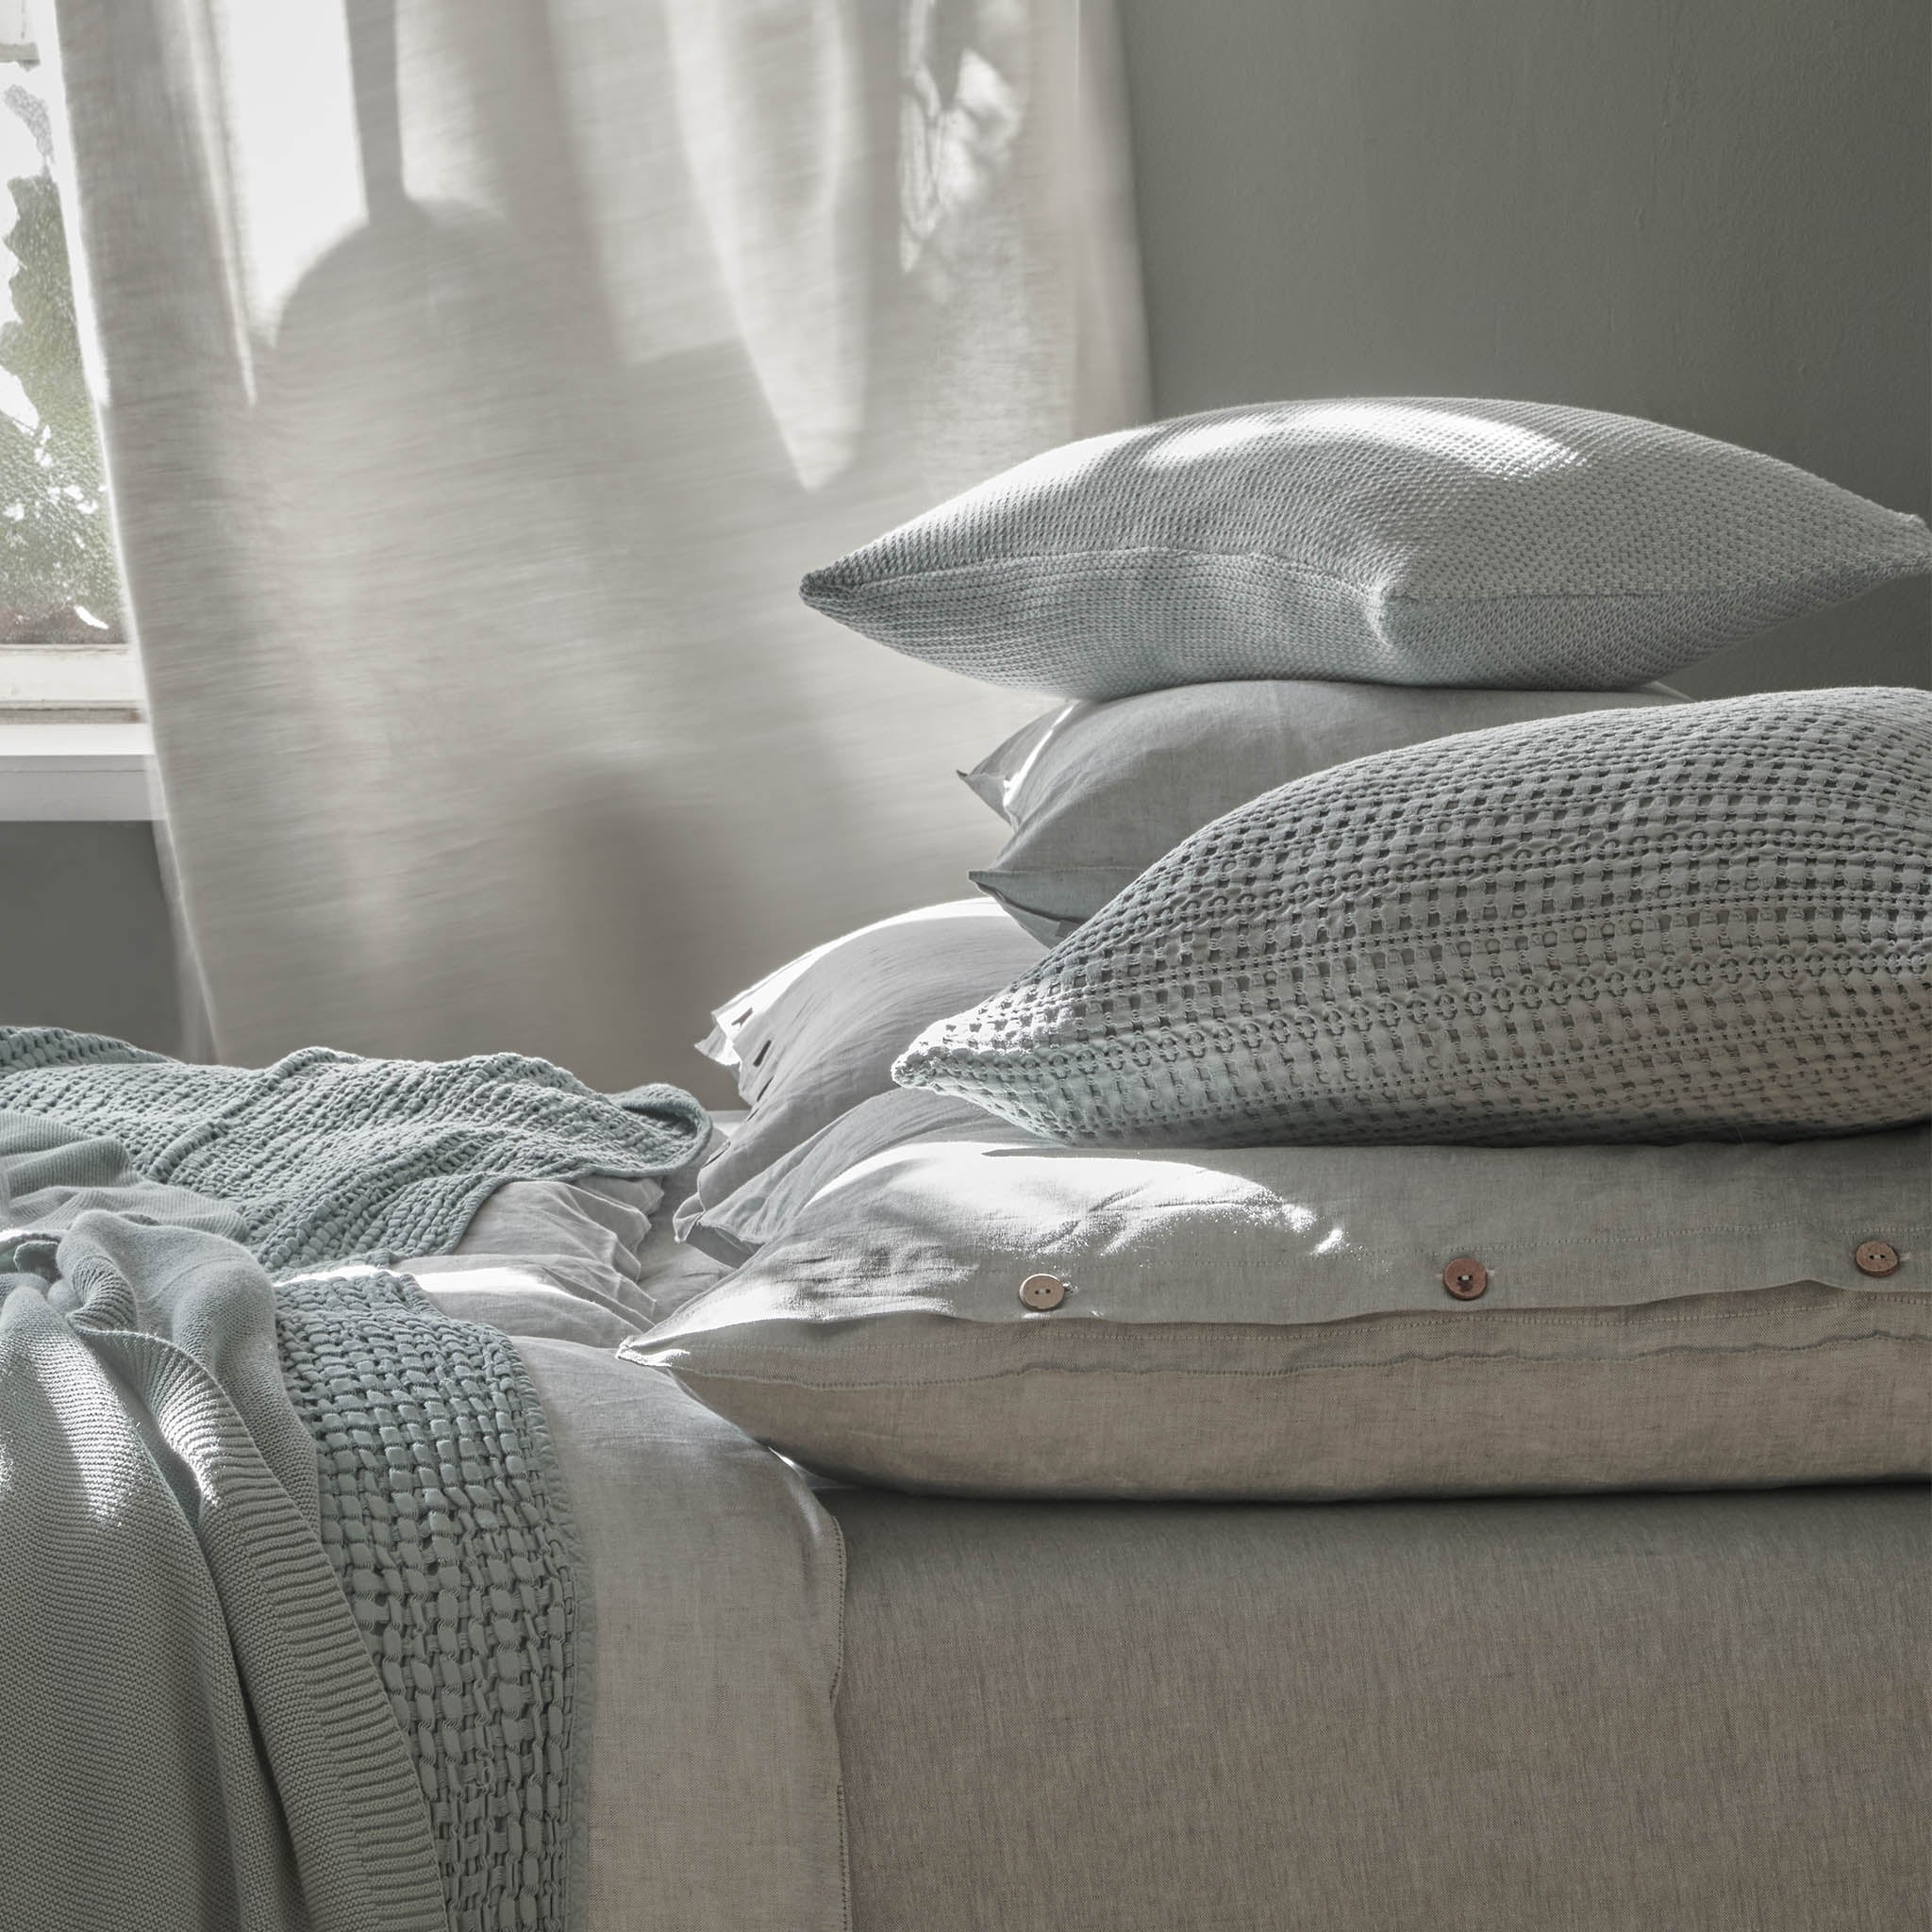 Anadia Cushion in light grey | Home & Living inspiration | URBANARA